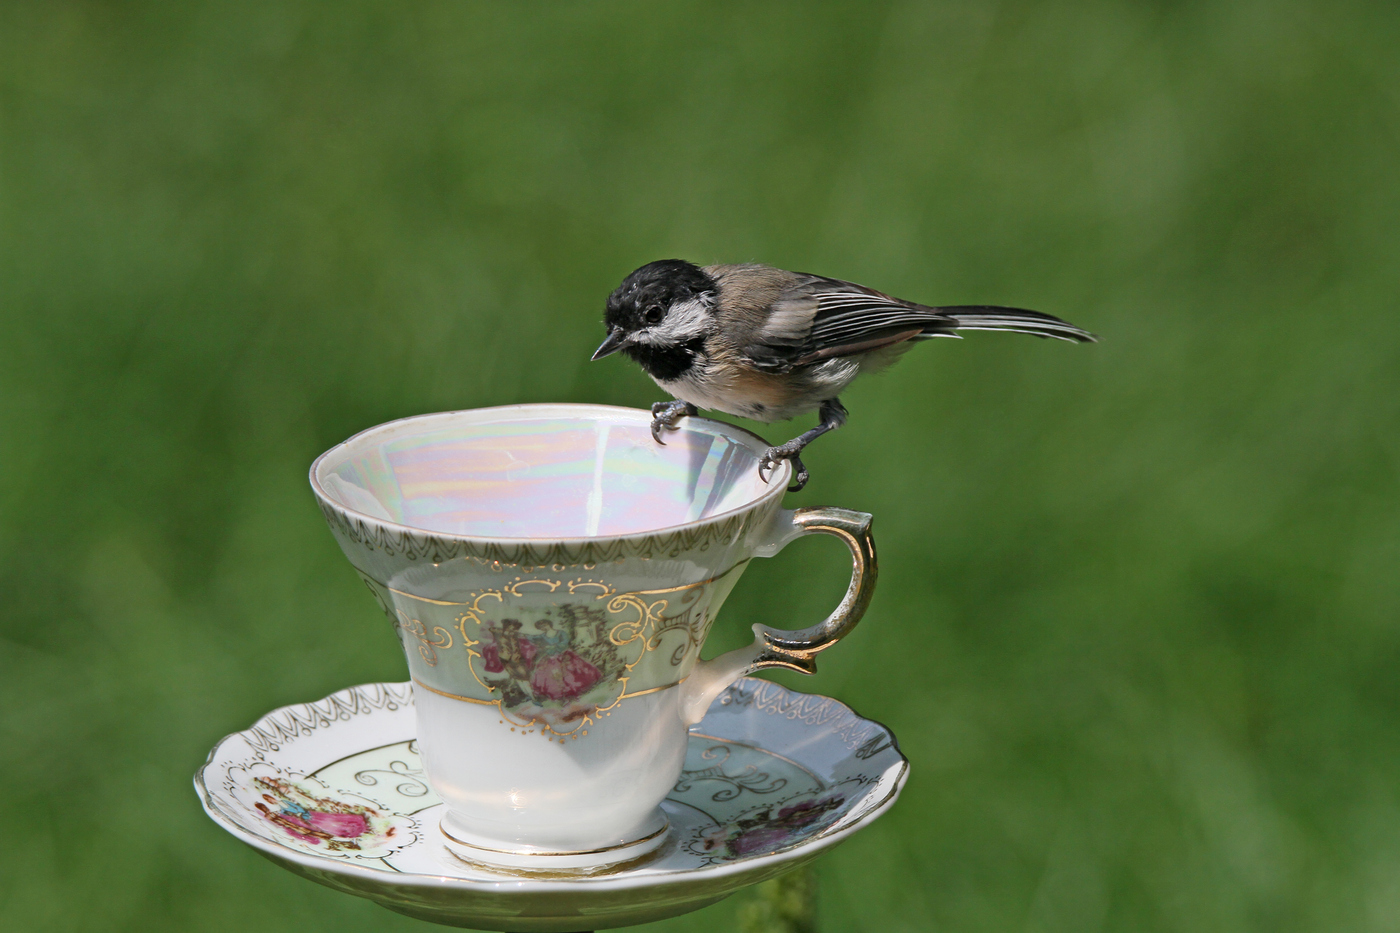 Chickadee at Teacup #27